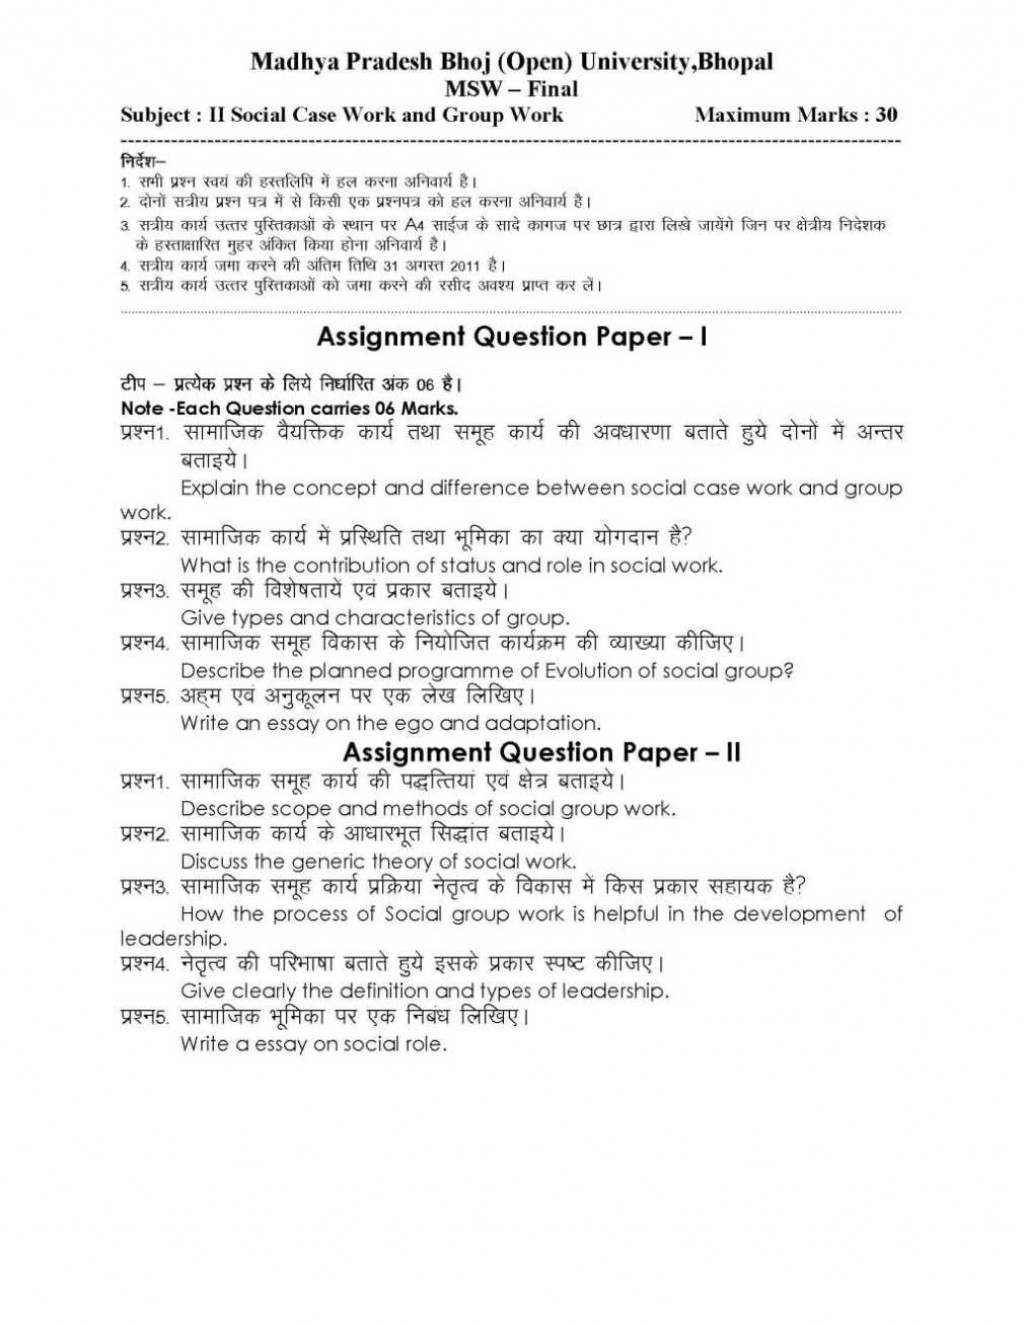 005 Bhoj University Bhopal Msw What Are The Qualities Of Good Leader Essay Formidable A Characteristics Pdf Introduction Make Large